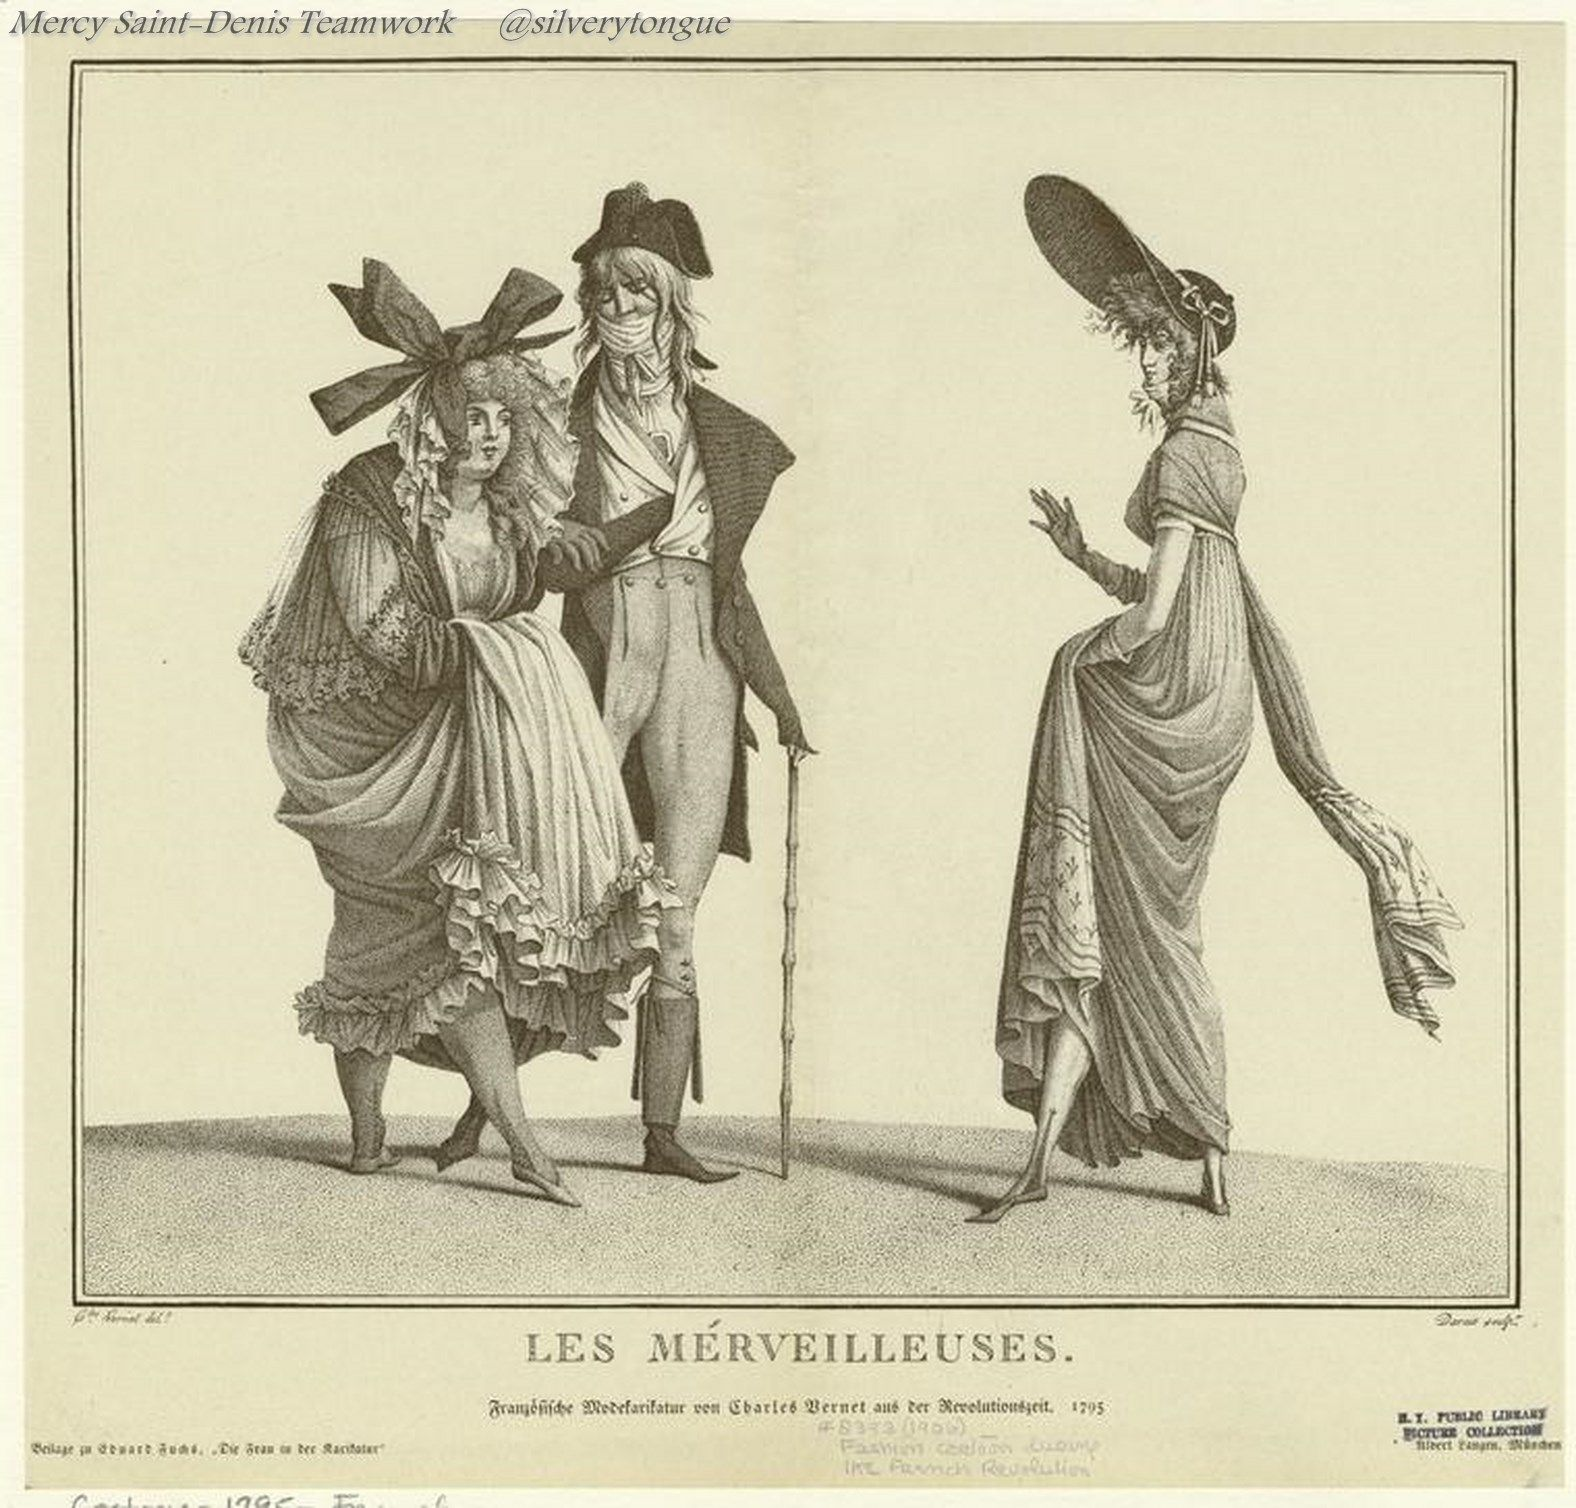 Les Mérveilleuses 1796 Regency Fashion Jane Austen Regency